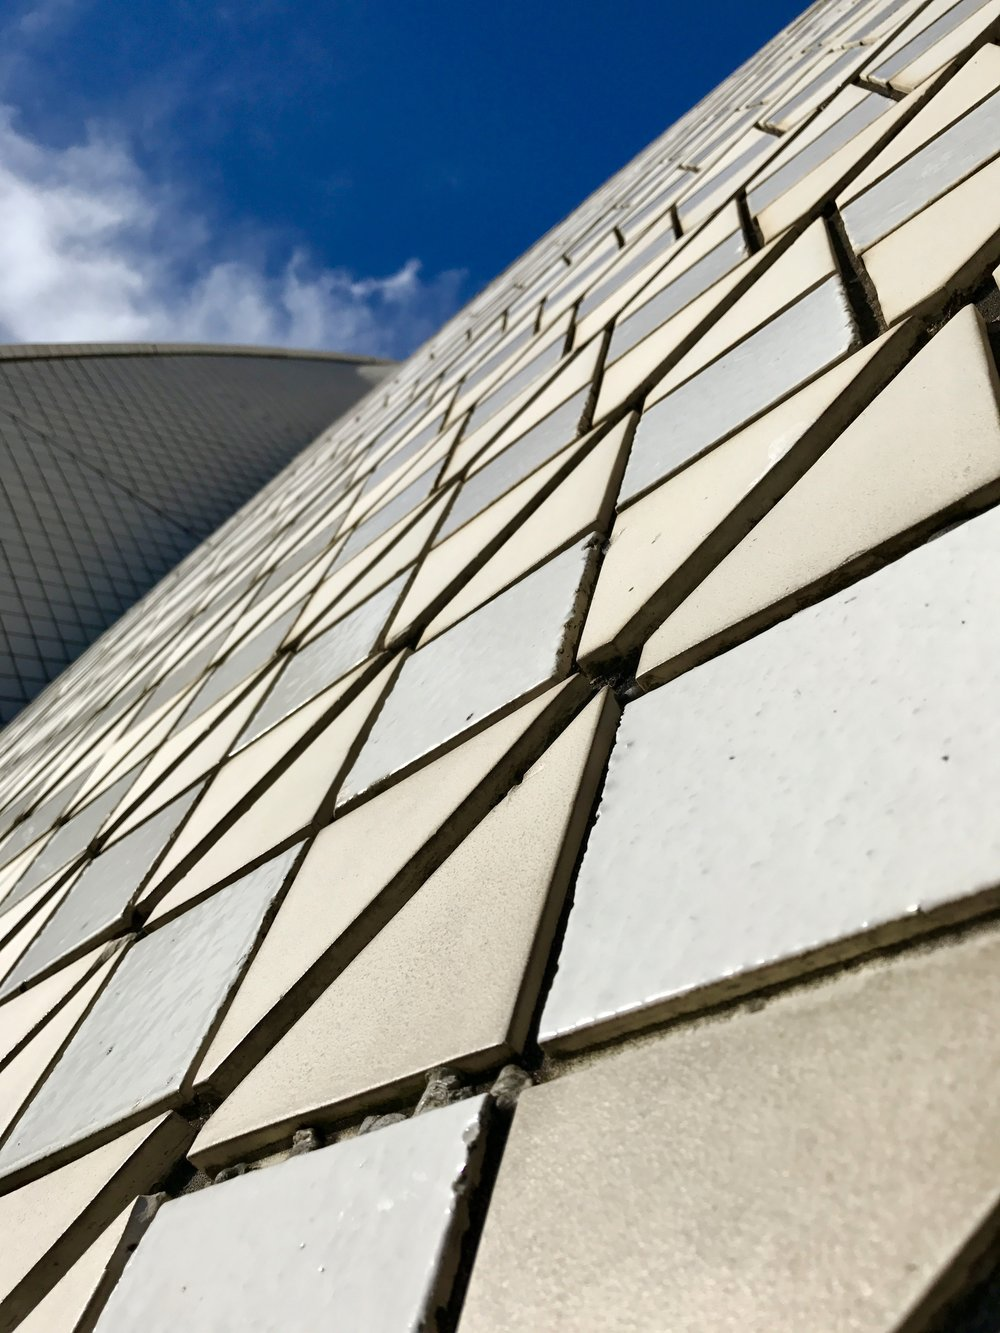 Up-close with the Sydney Opera House tiles